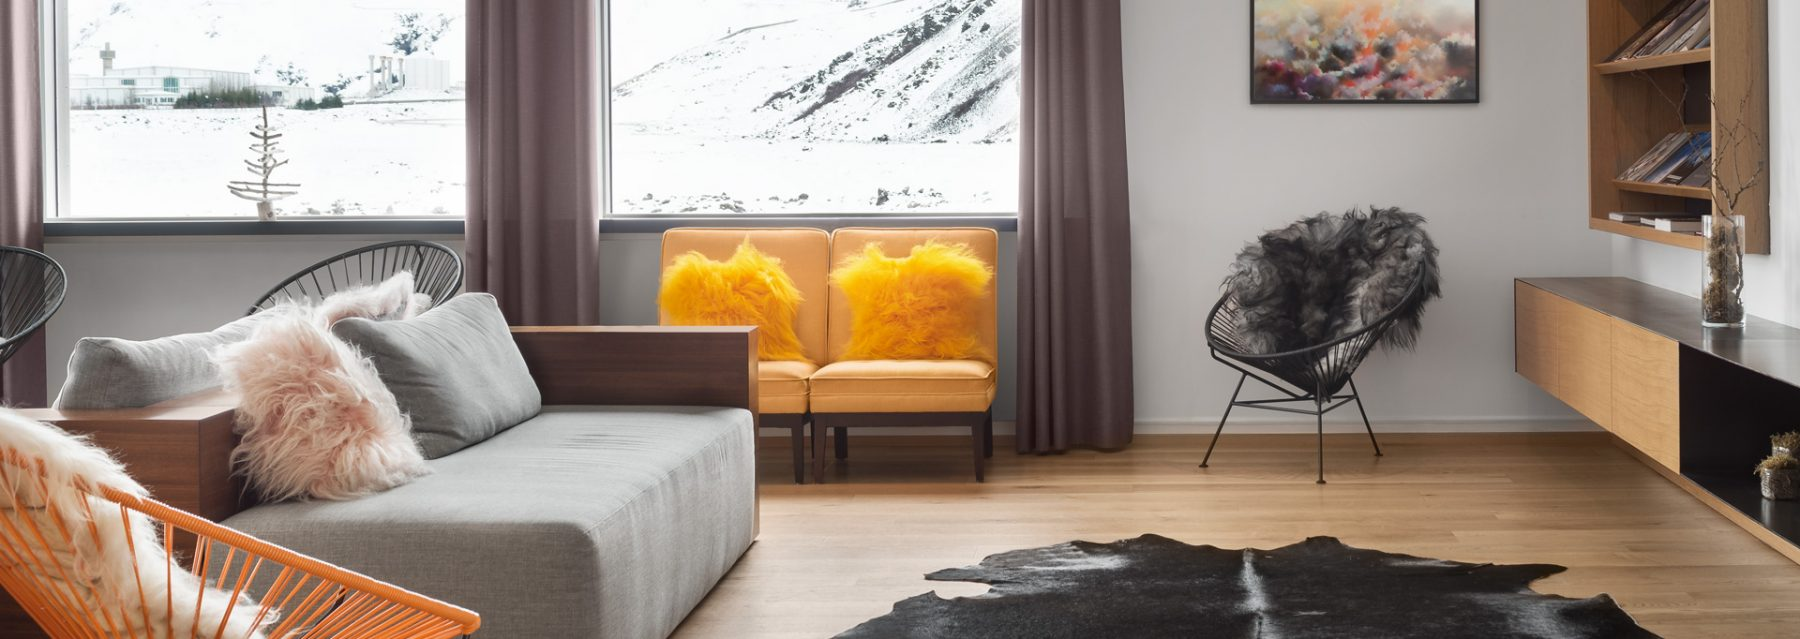 i-on-hotel-iceland-interior-designer-photographer